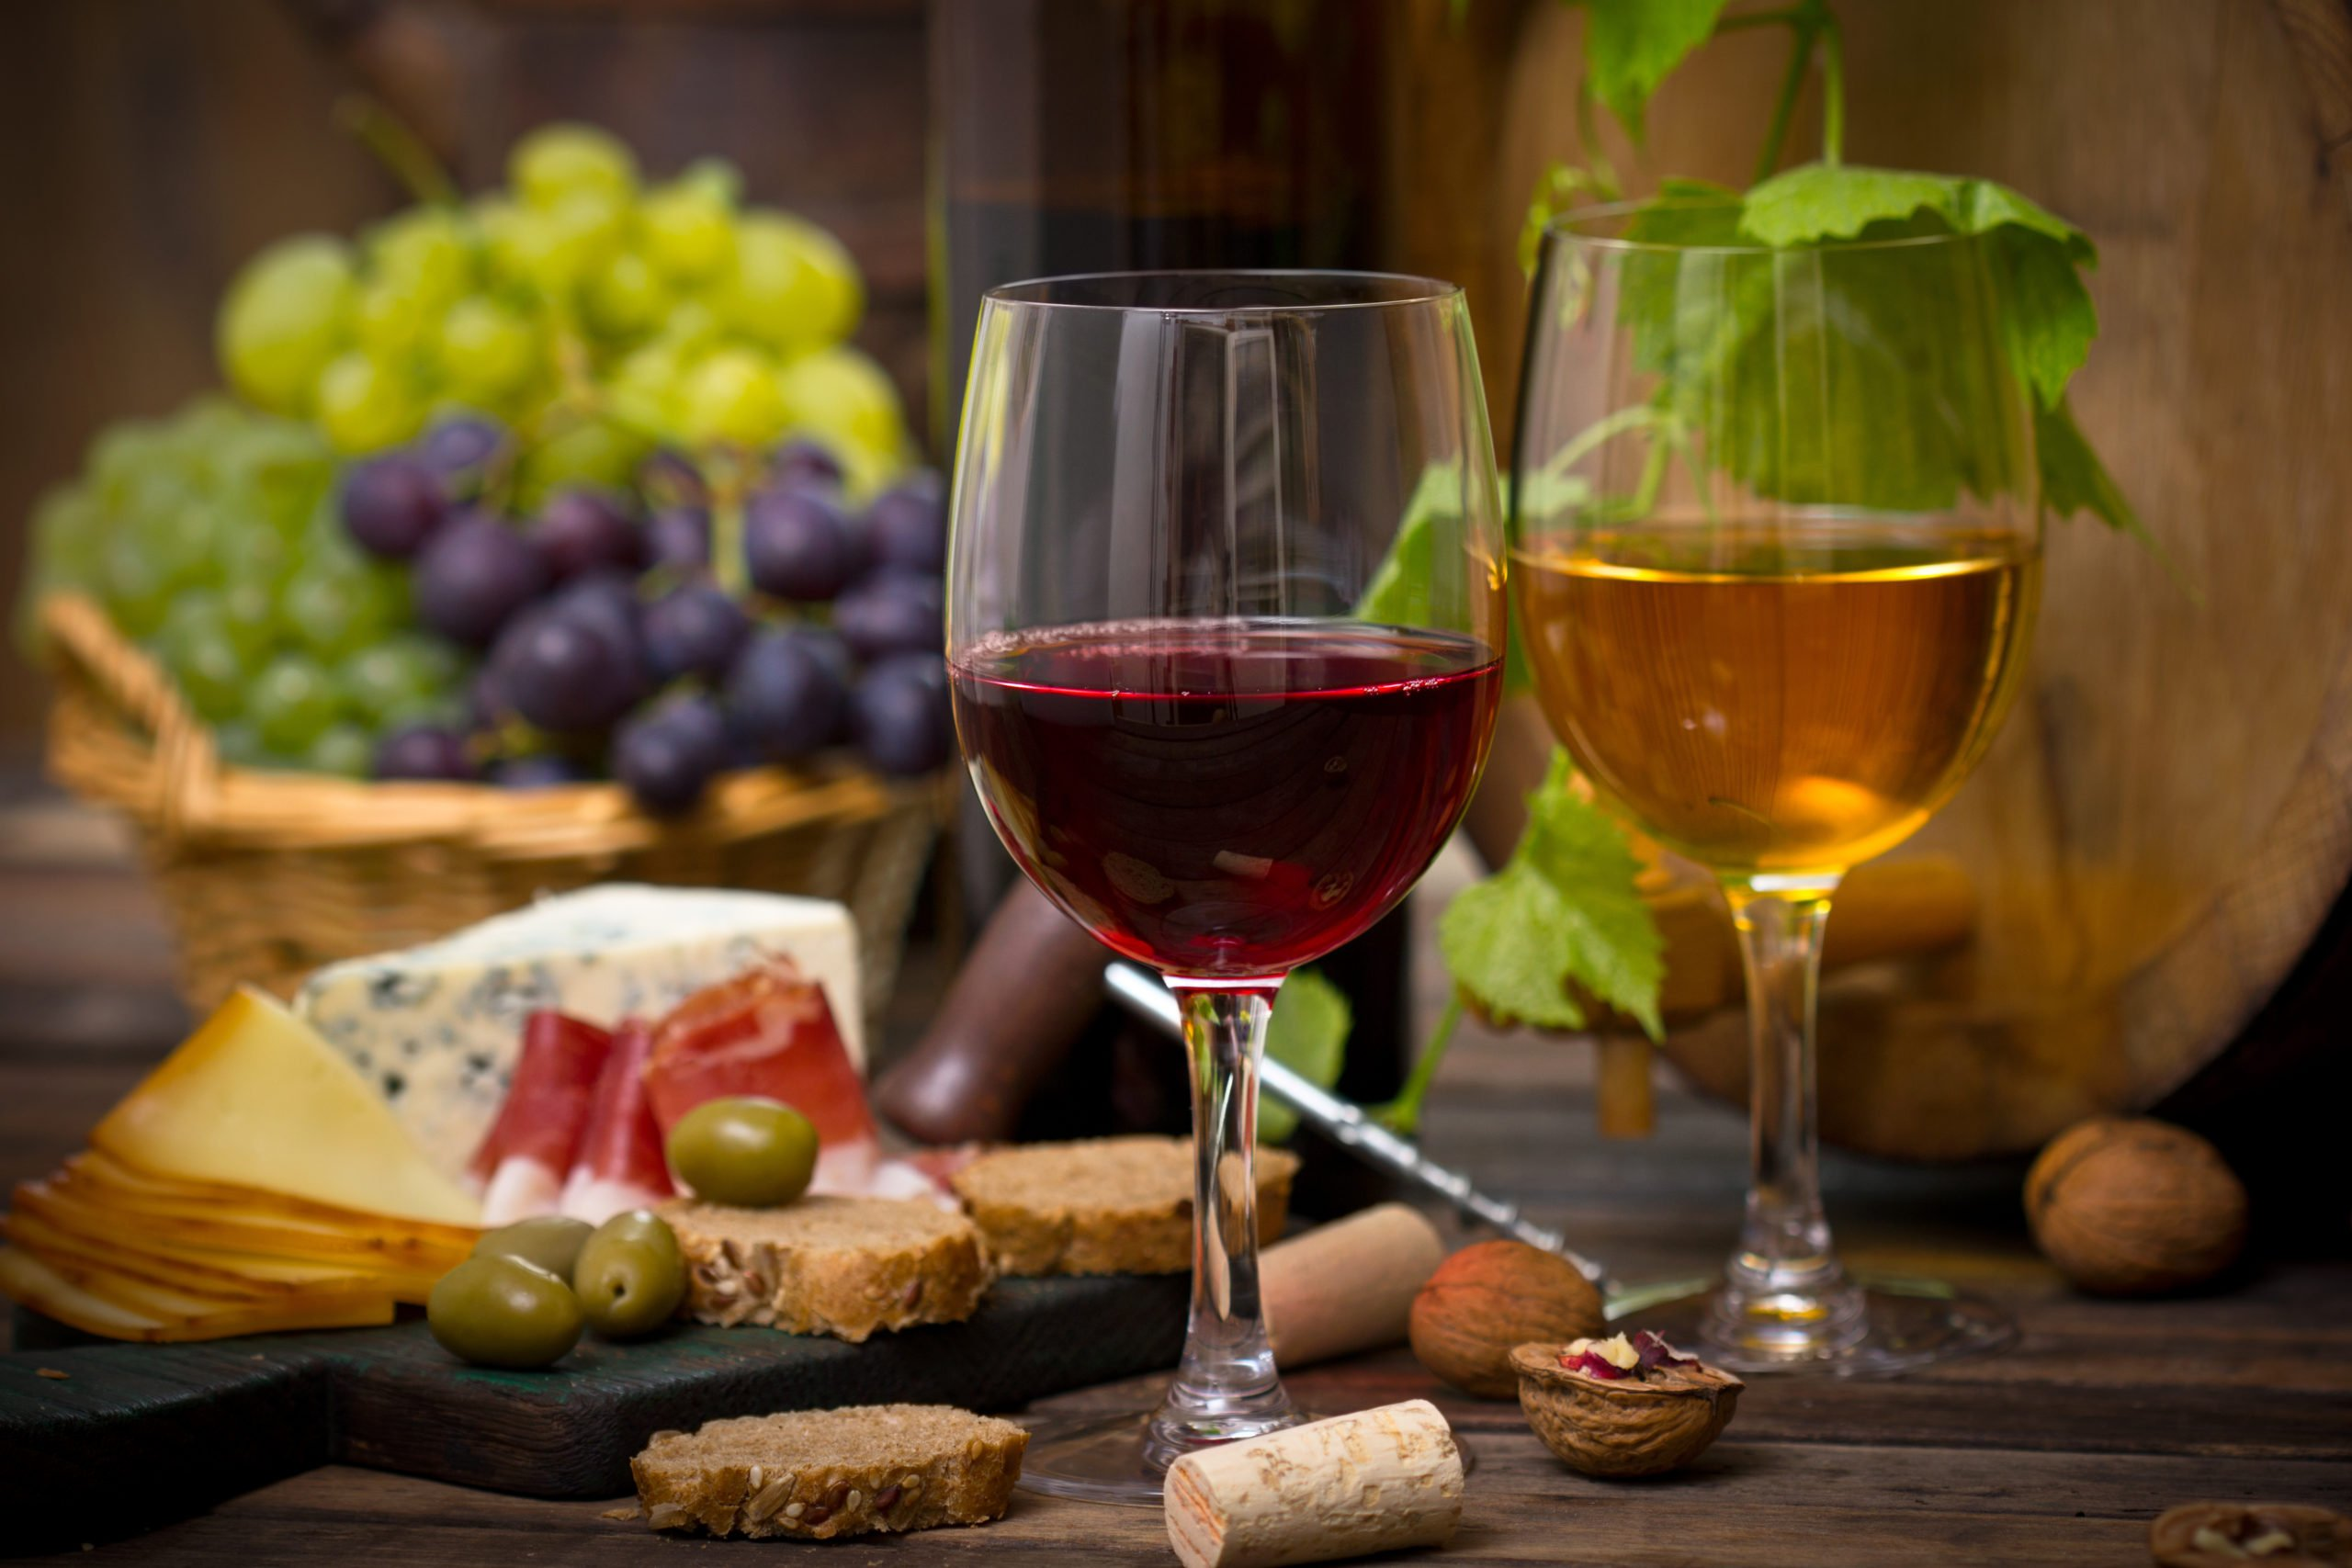 Taste Some Italian Wine And Typical Appetizers On The Milan Wine Experience